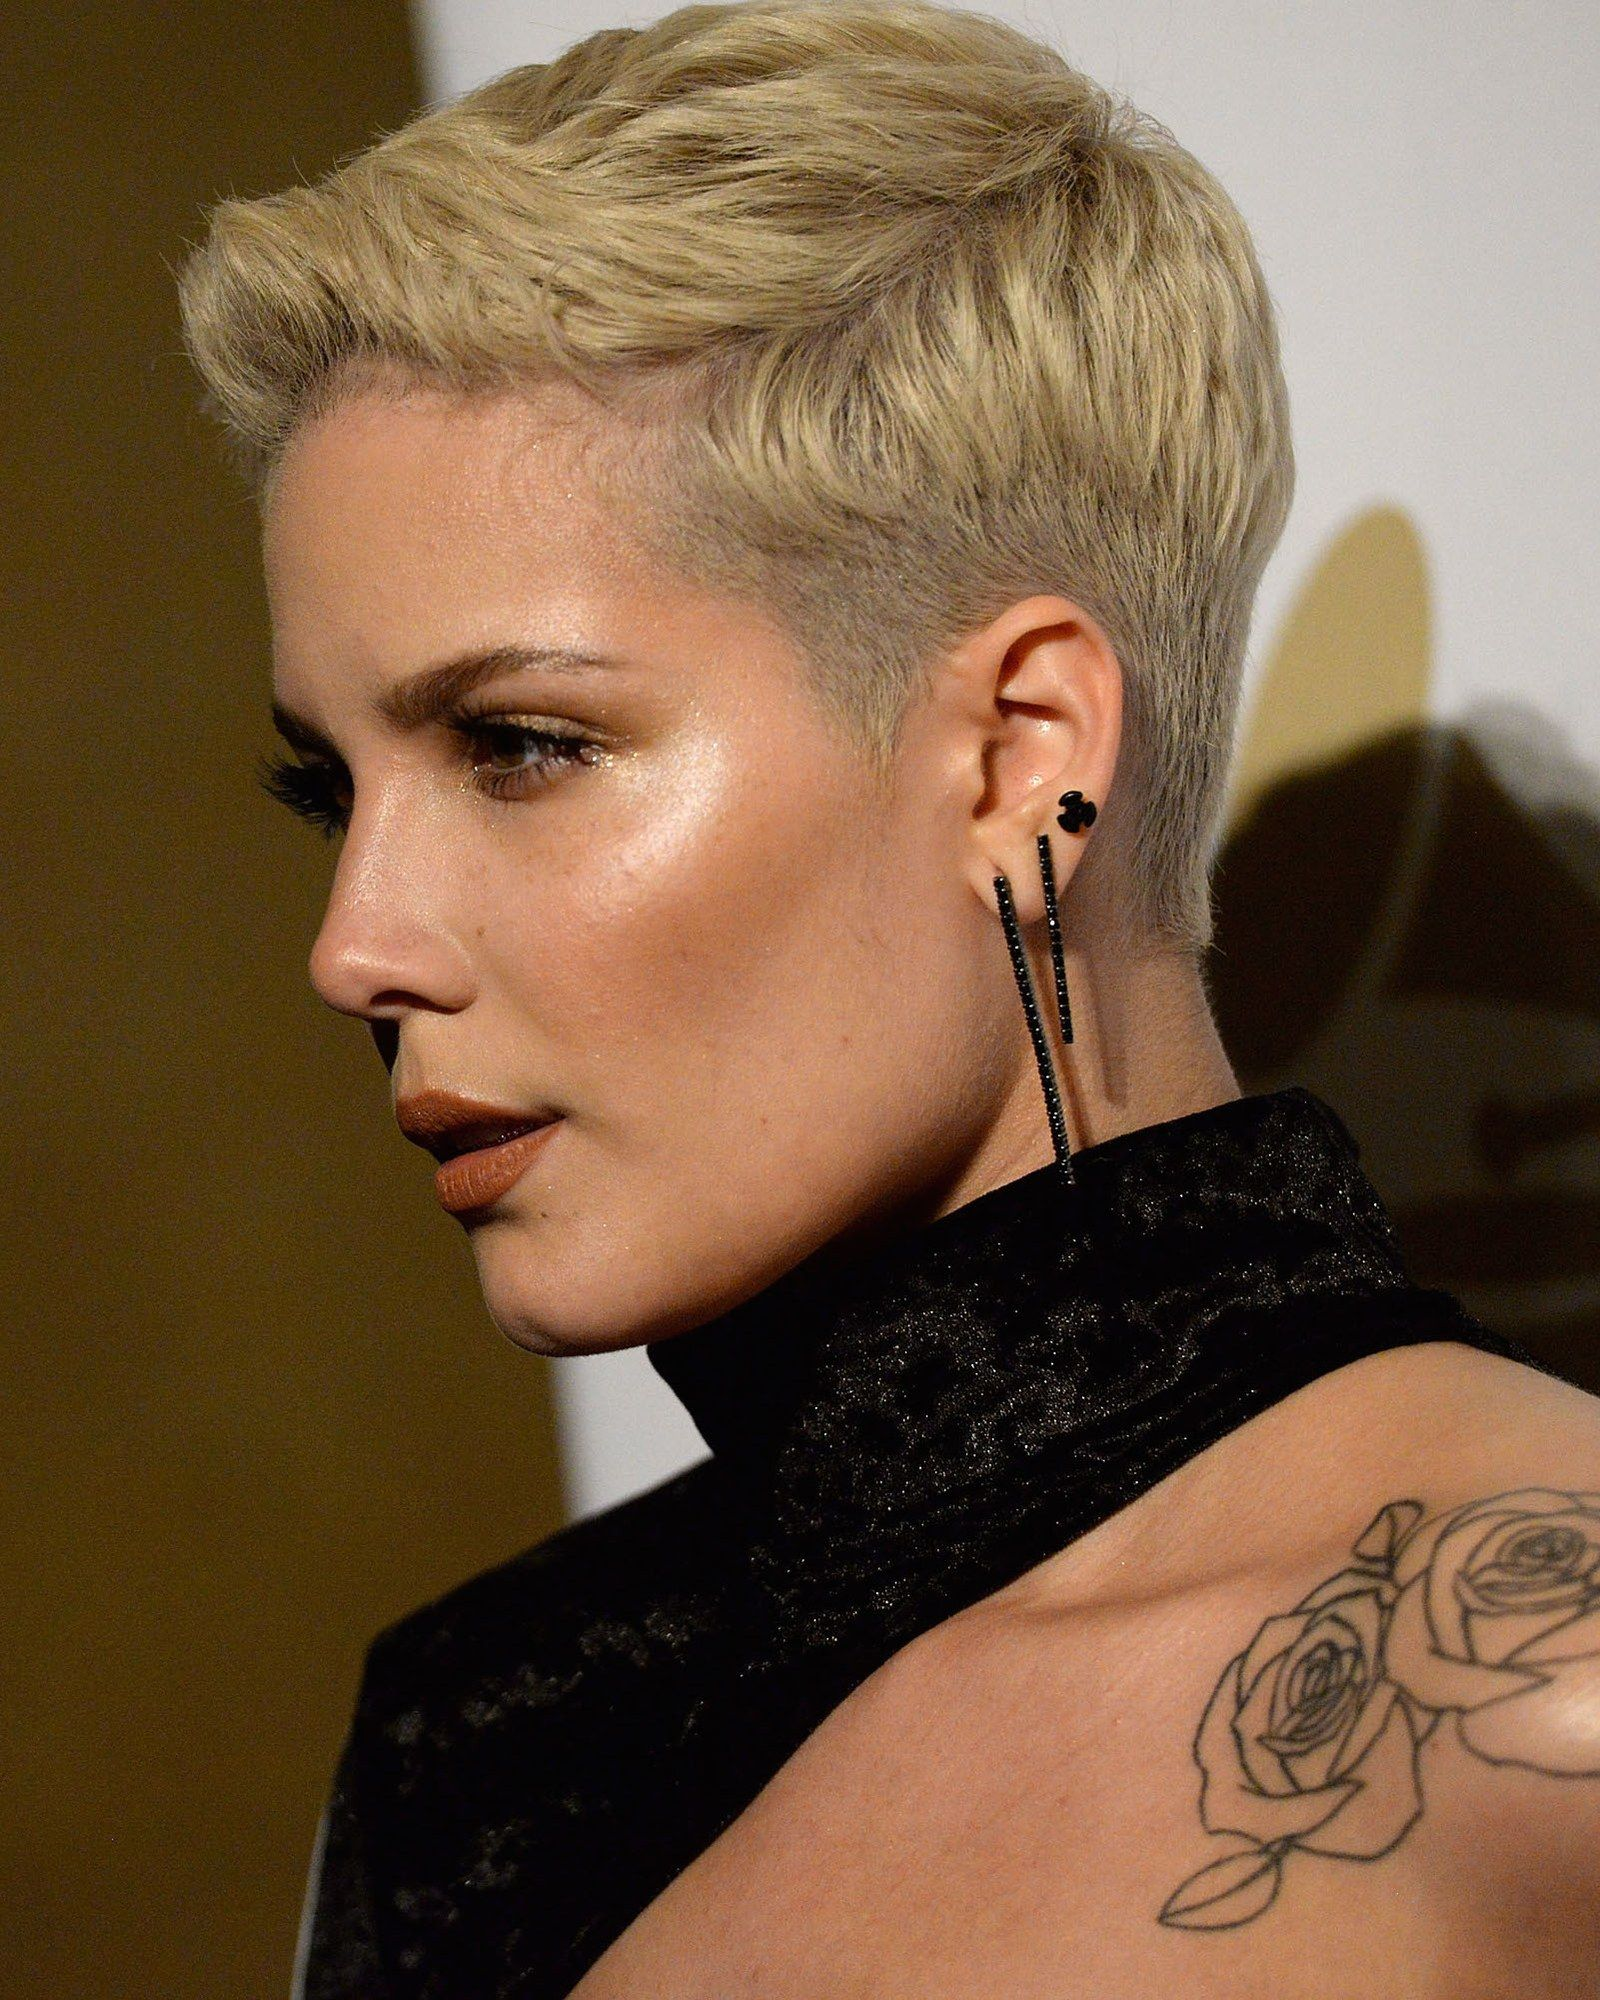 33 Pixie Cuts That'll Make You Want Short Hair